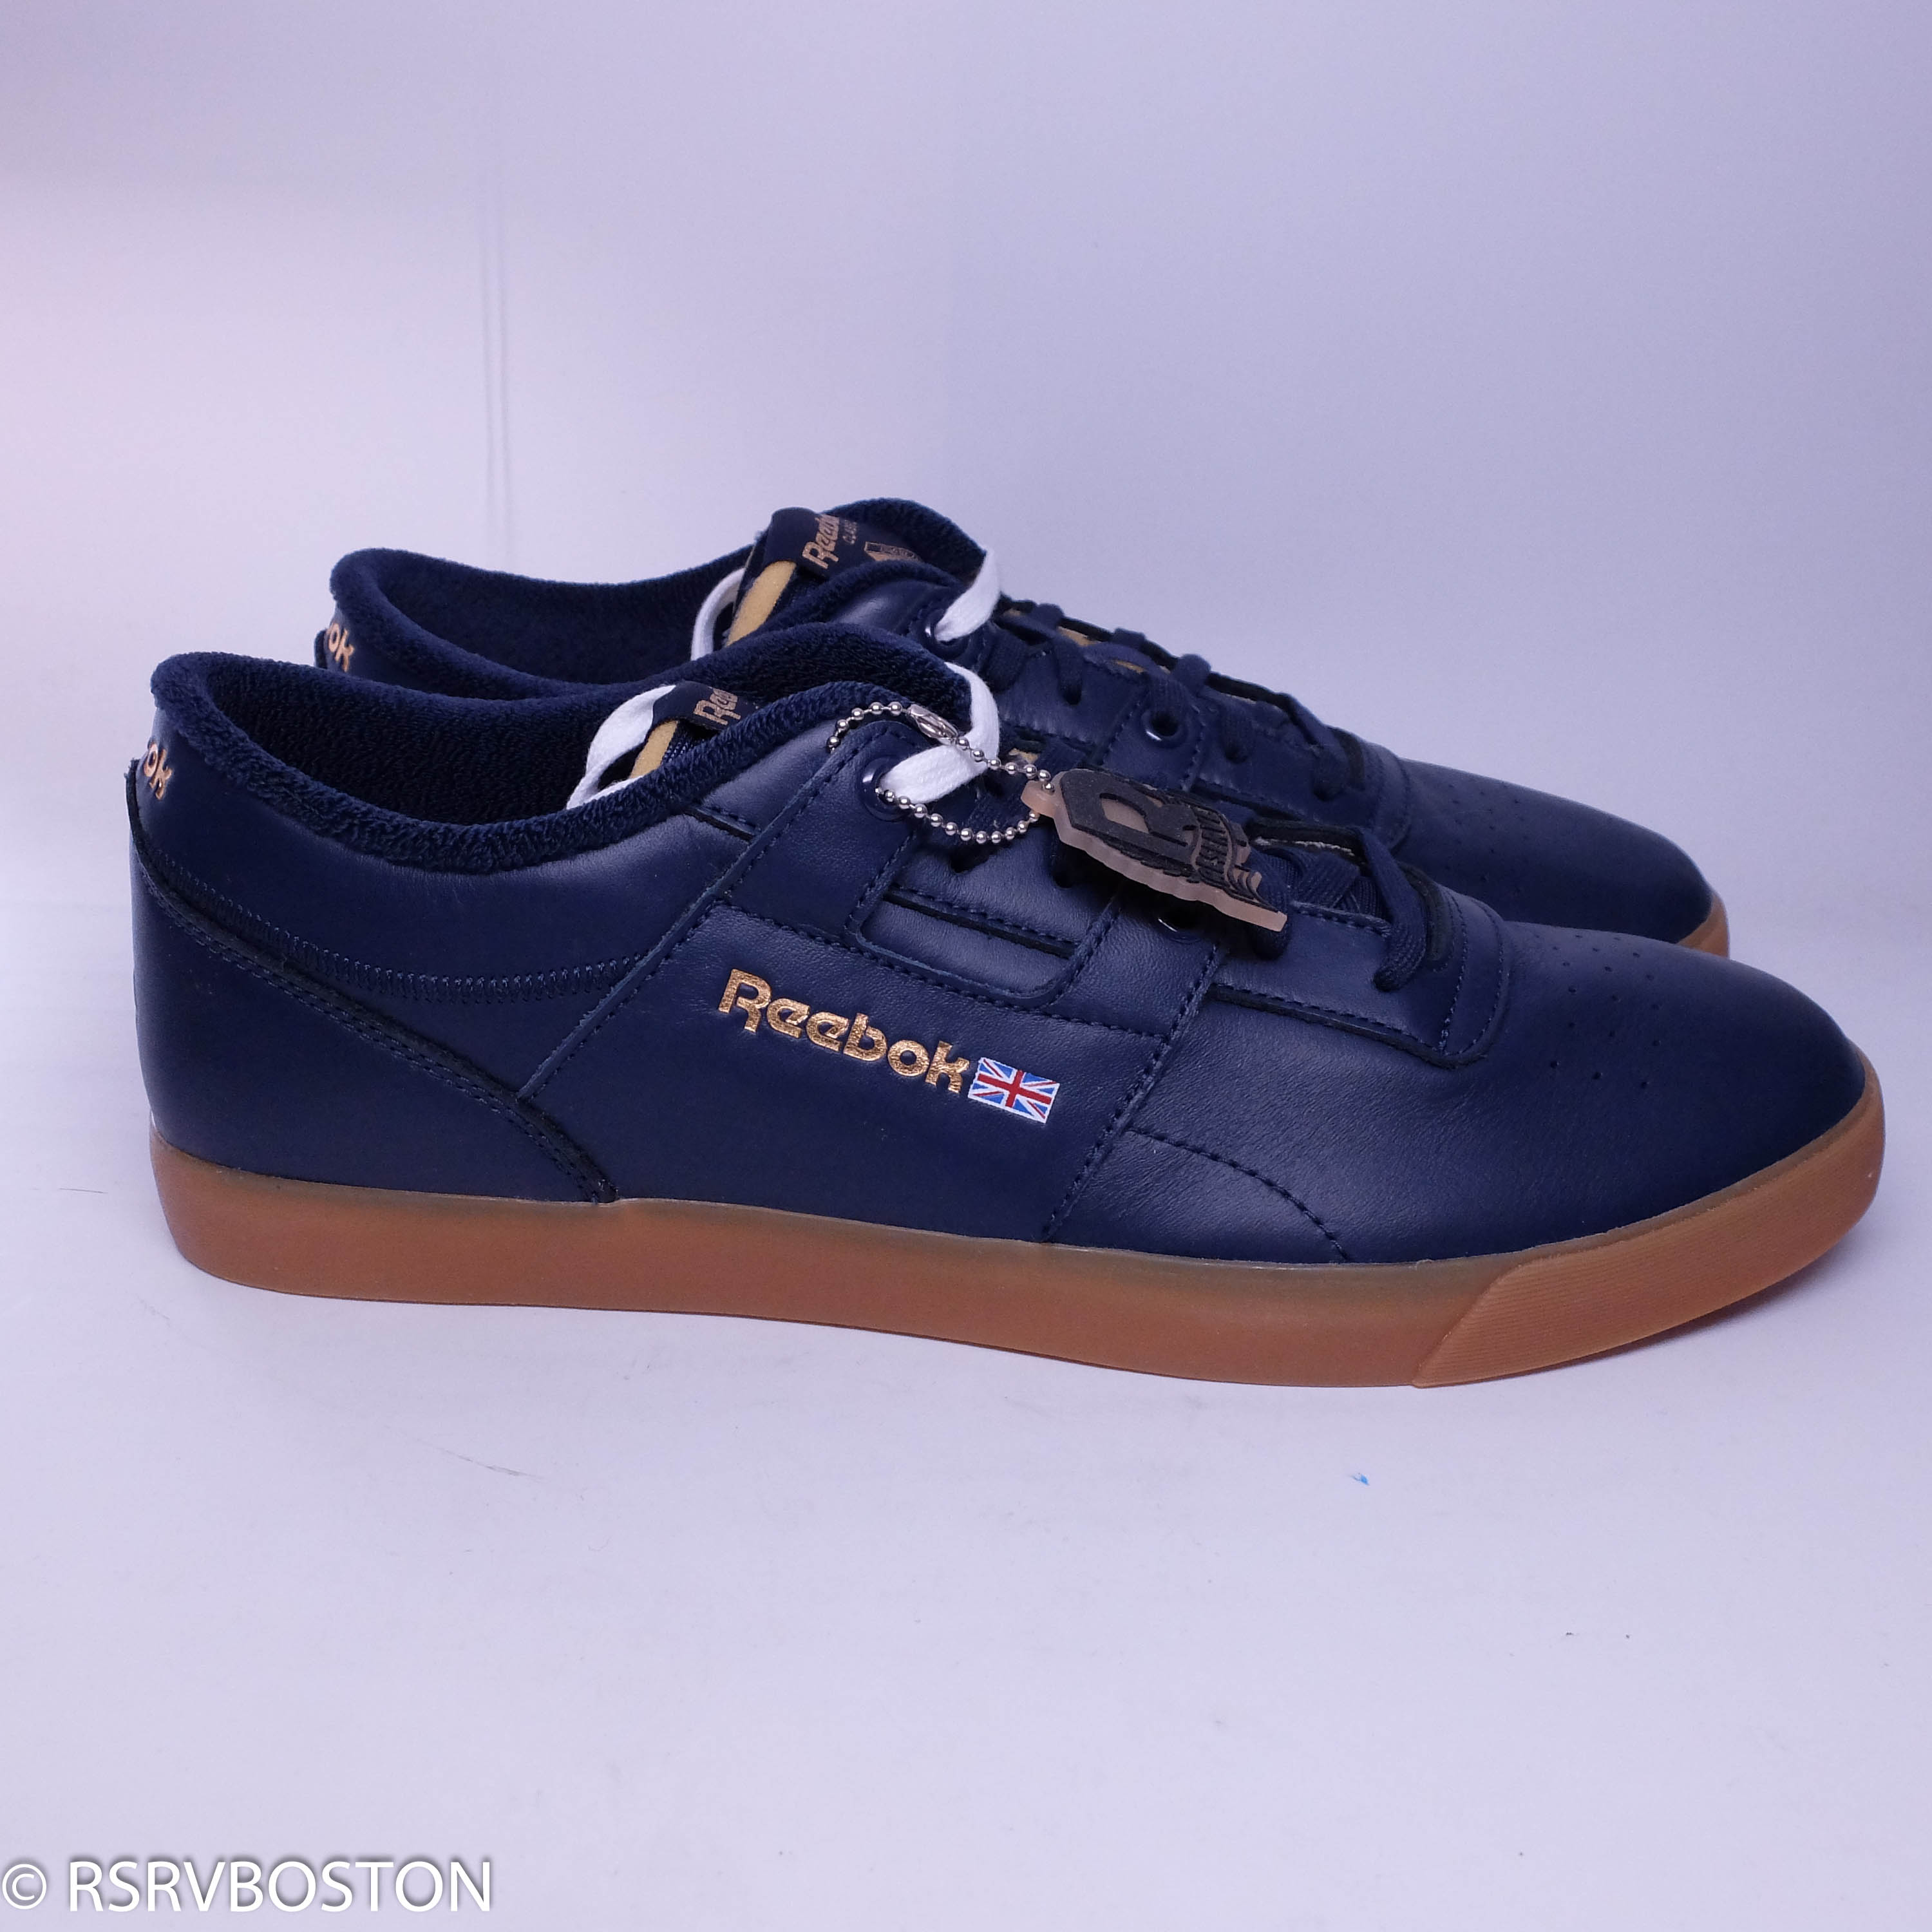 01adb7a7406 Palace × Reebok ×. New Workout Low Clean FVS Collegiate Navy ...